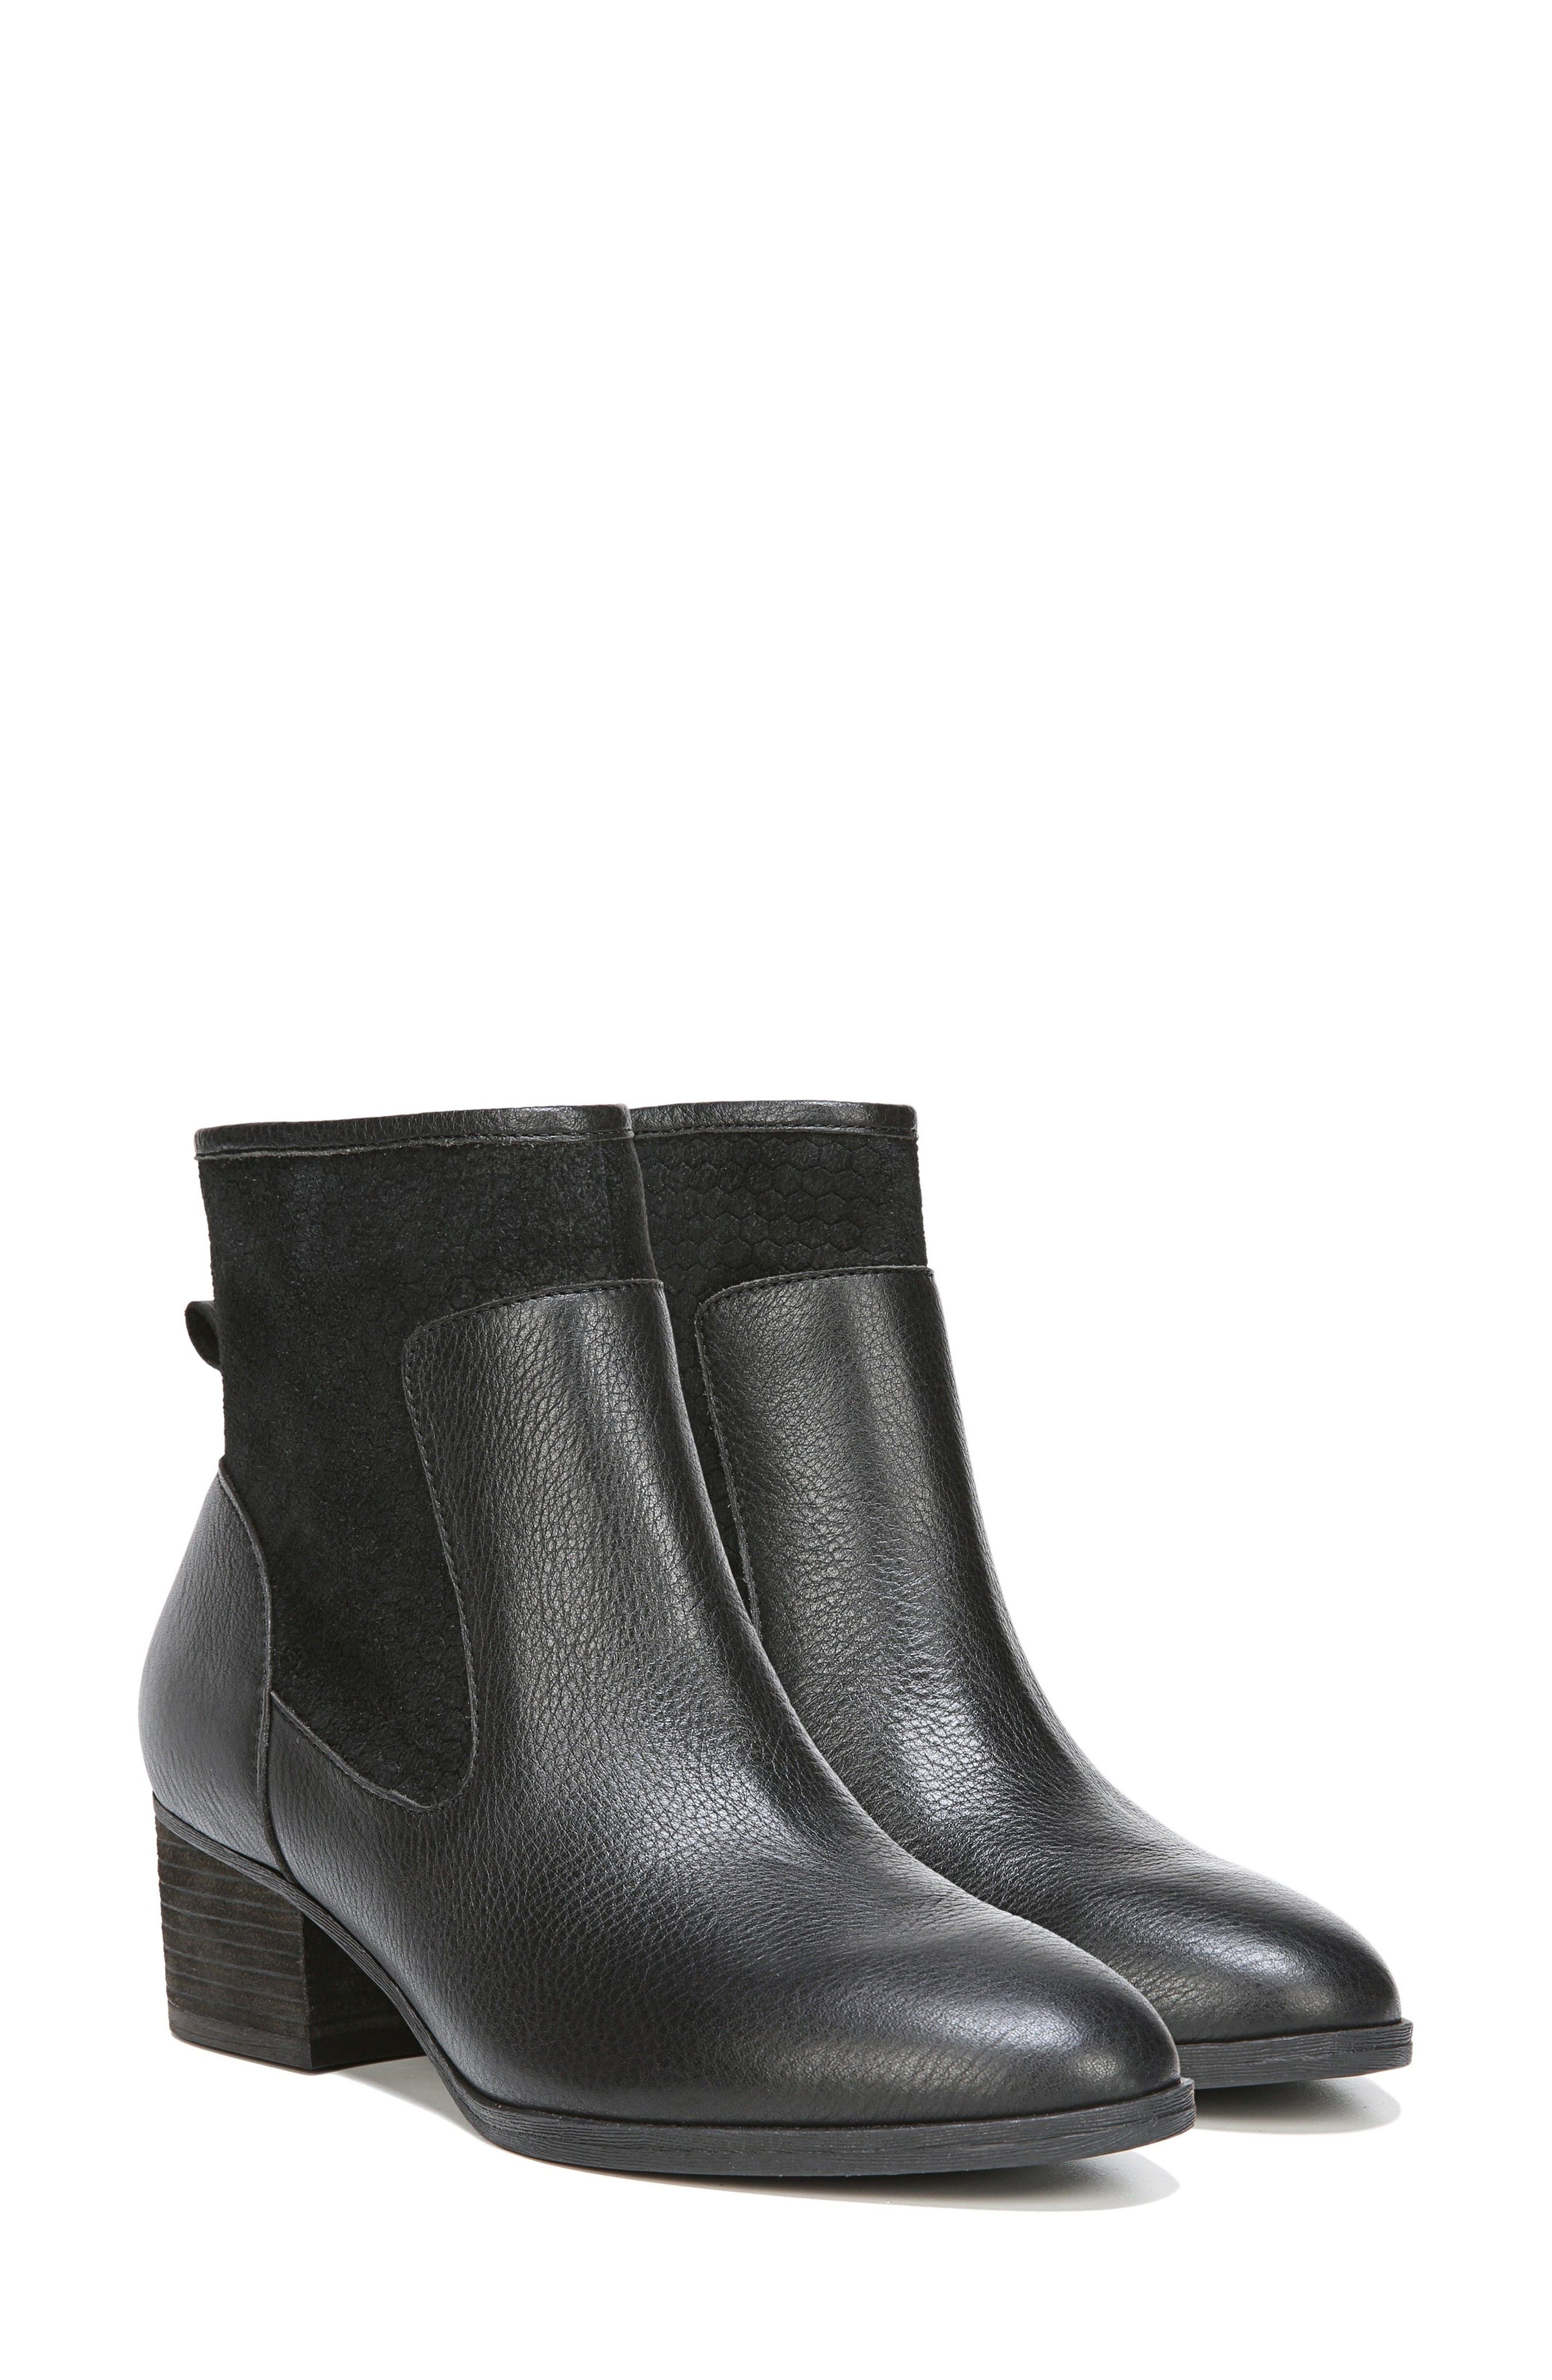 Tawny Bootie,                             Alternate thumbnail 8, color,                             001